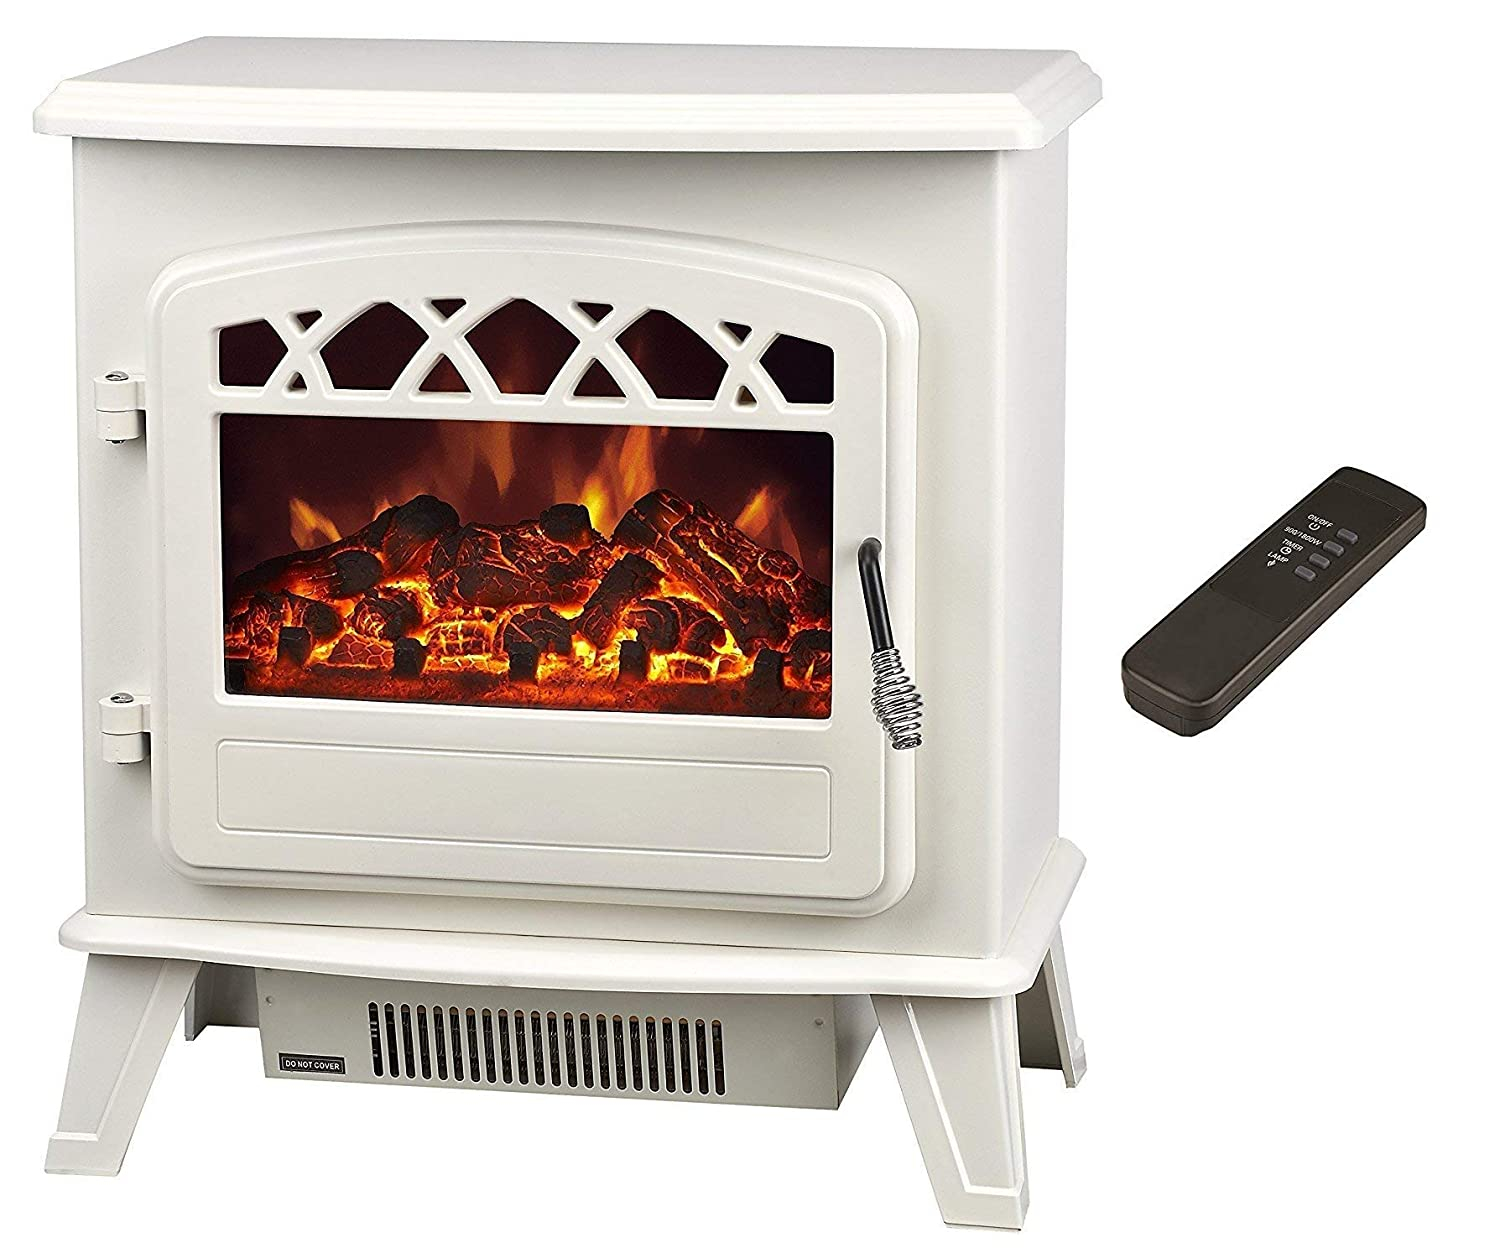 Galleon Fires Castor  Electric Stove - Cream - Electric Stove Fireplaces - Heater - Free standing Fires - Galleon Fireplaces